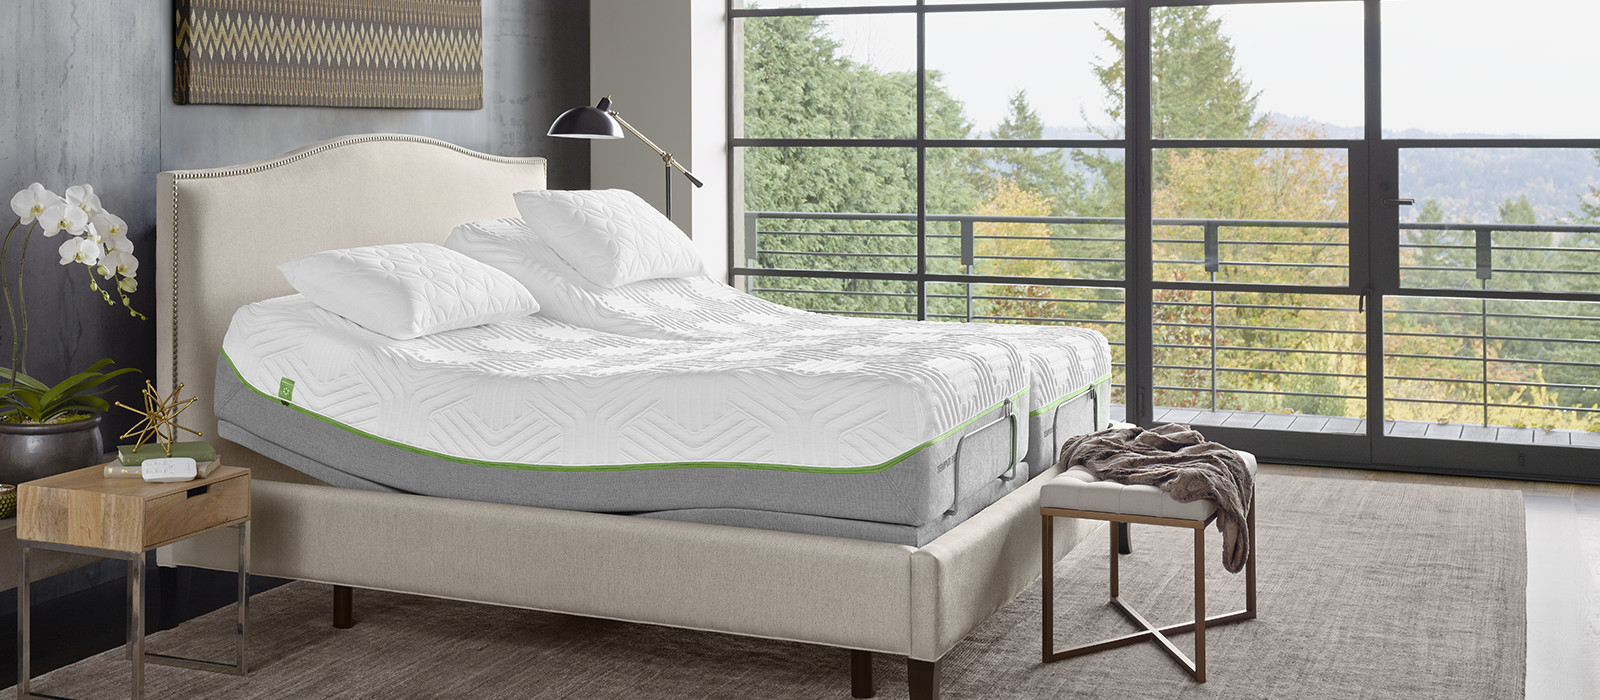 Etonnant TEMPUR Ergo Plus Adjustable Base | Tempur Pedic ?